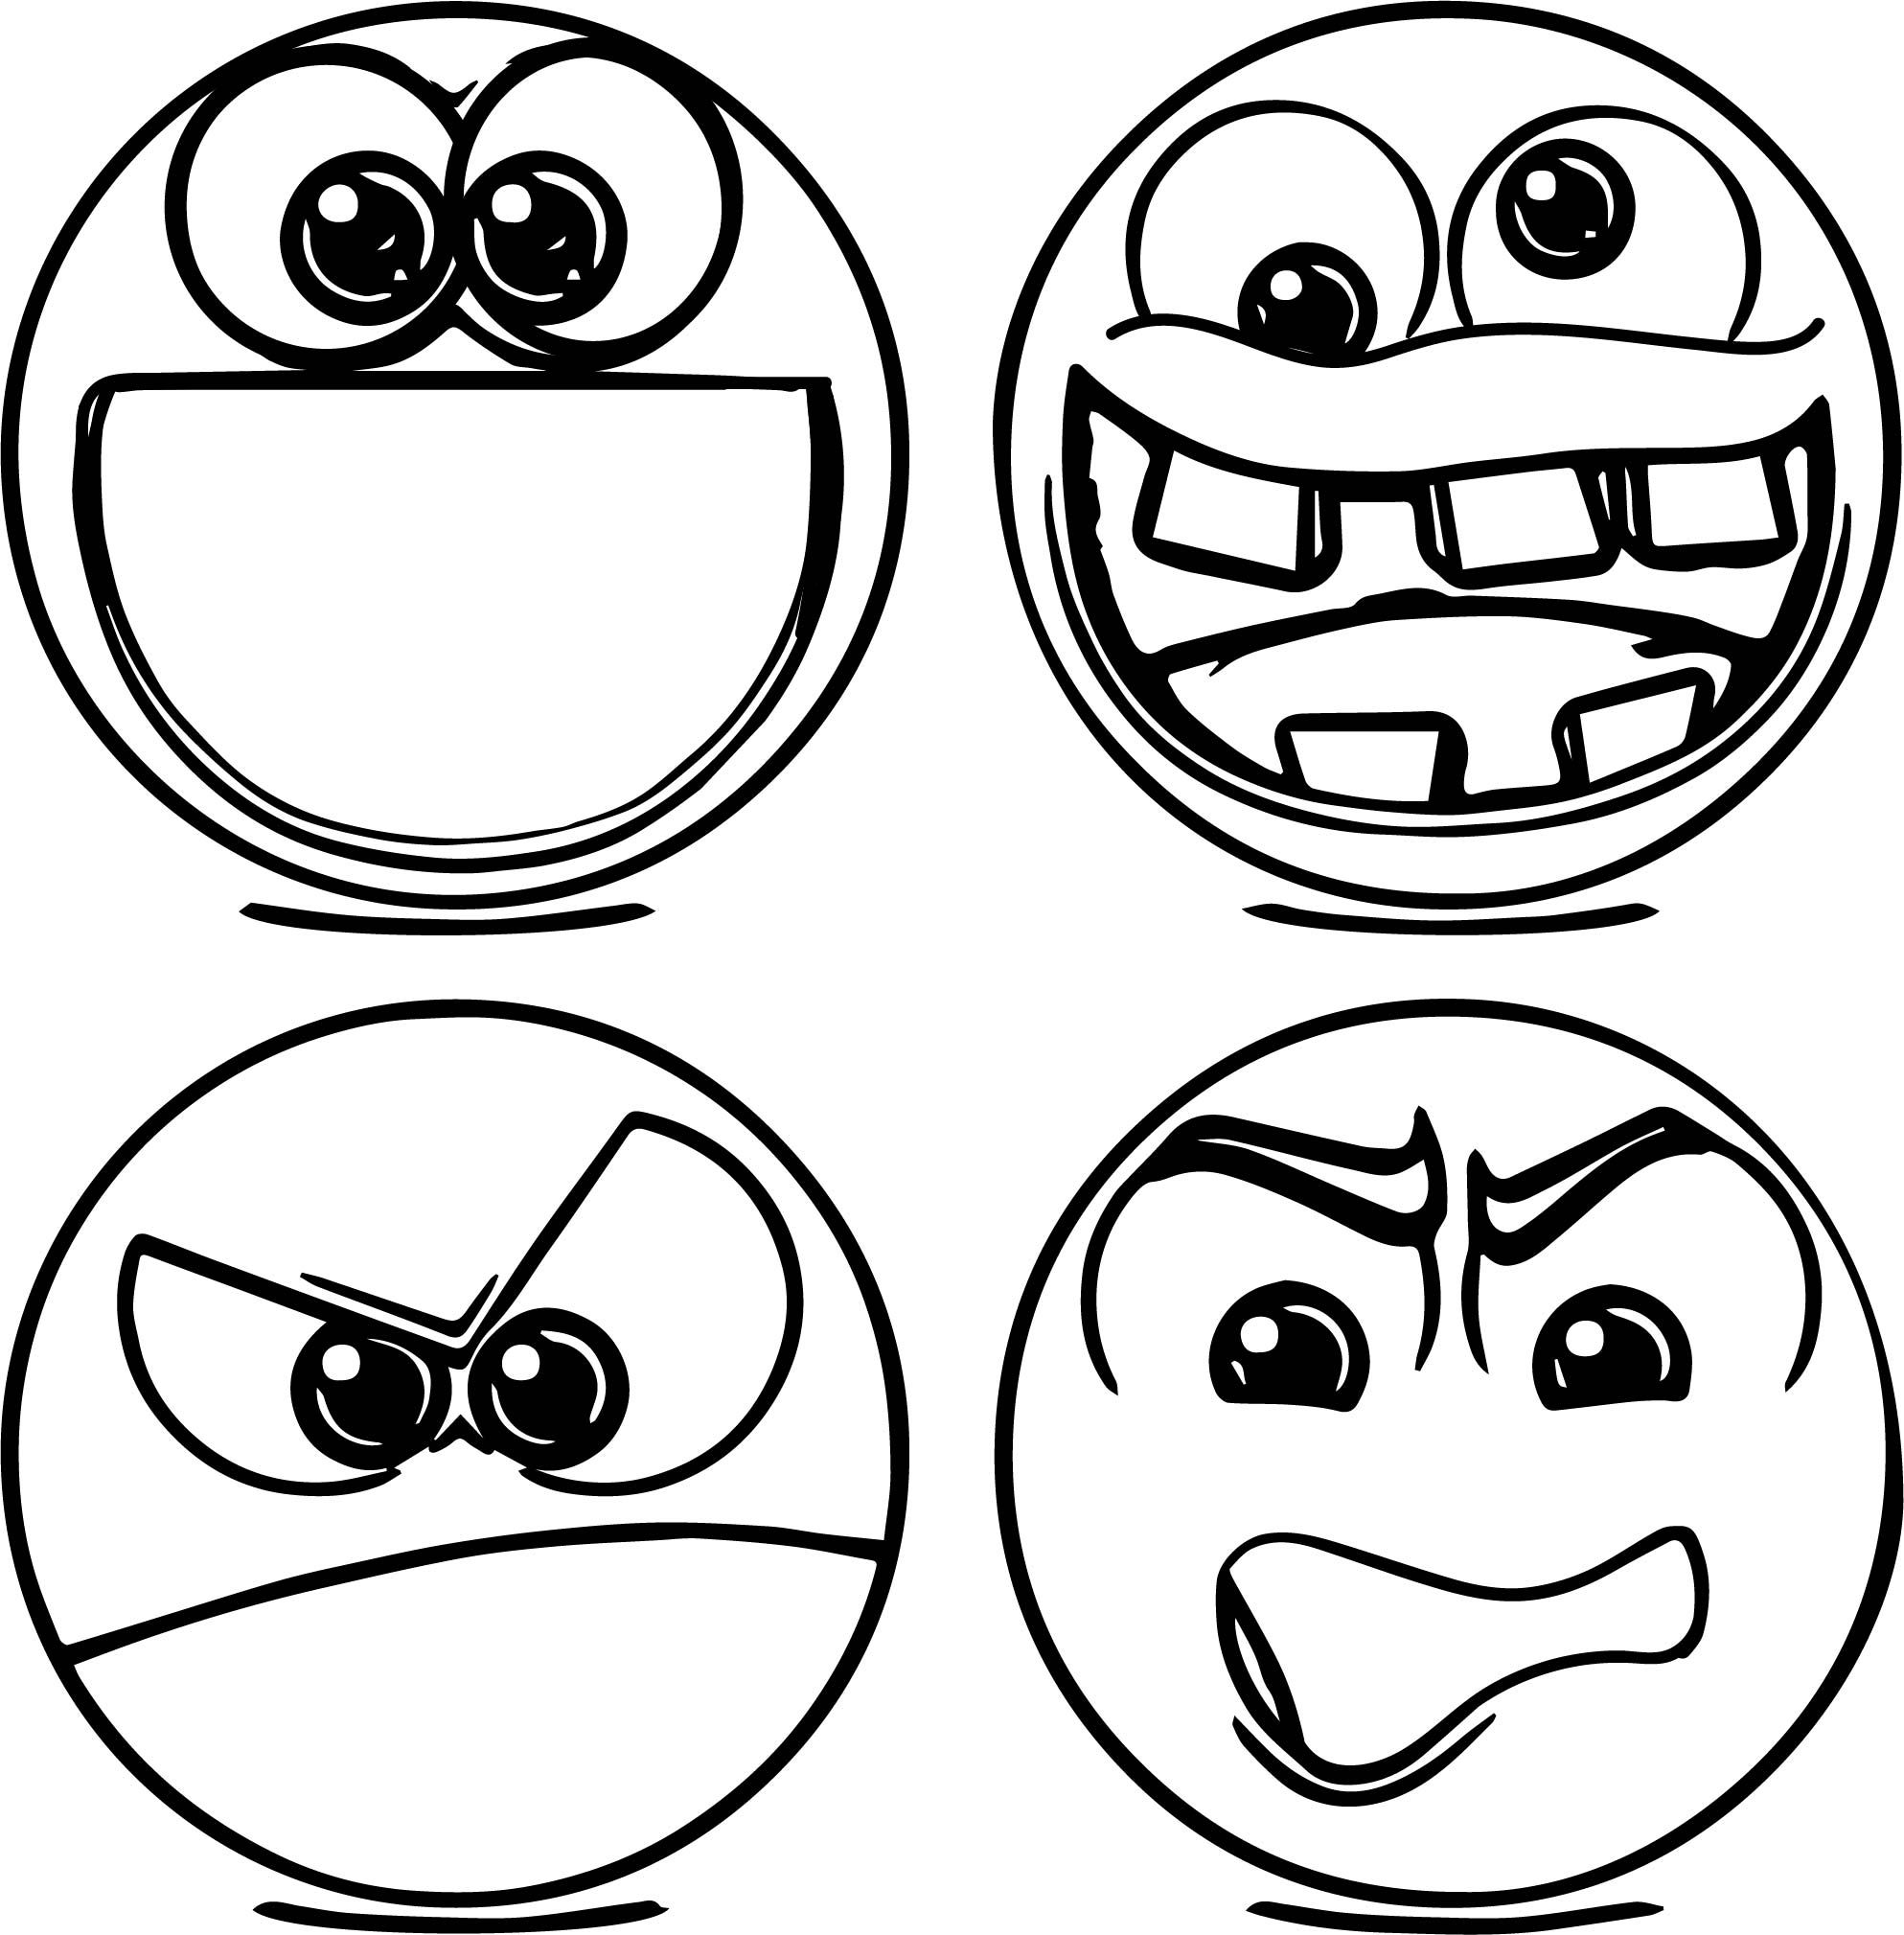 Emoticons Missatge Coloring Page | Wecoloringpage